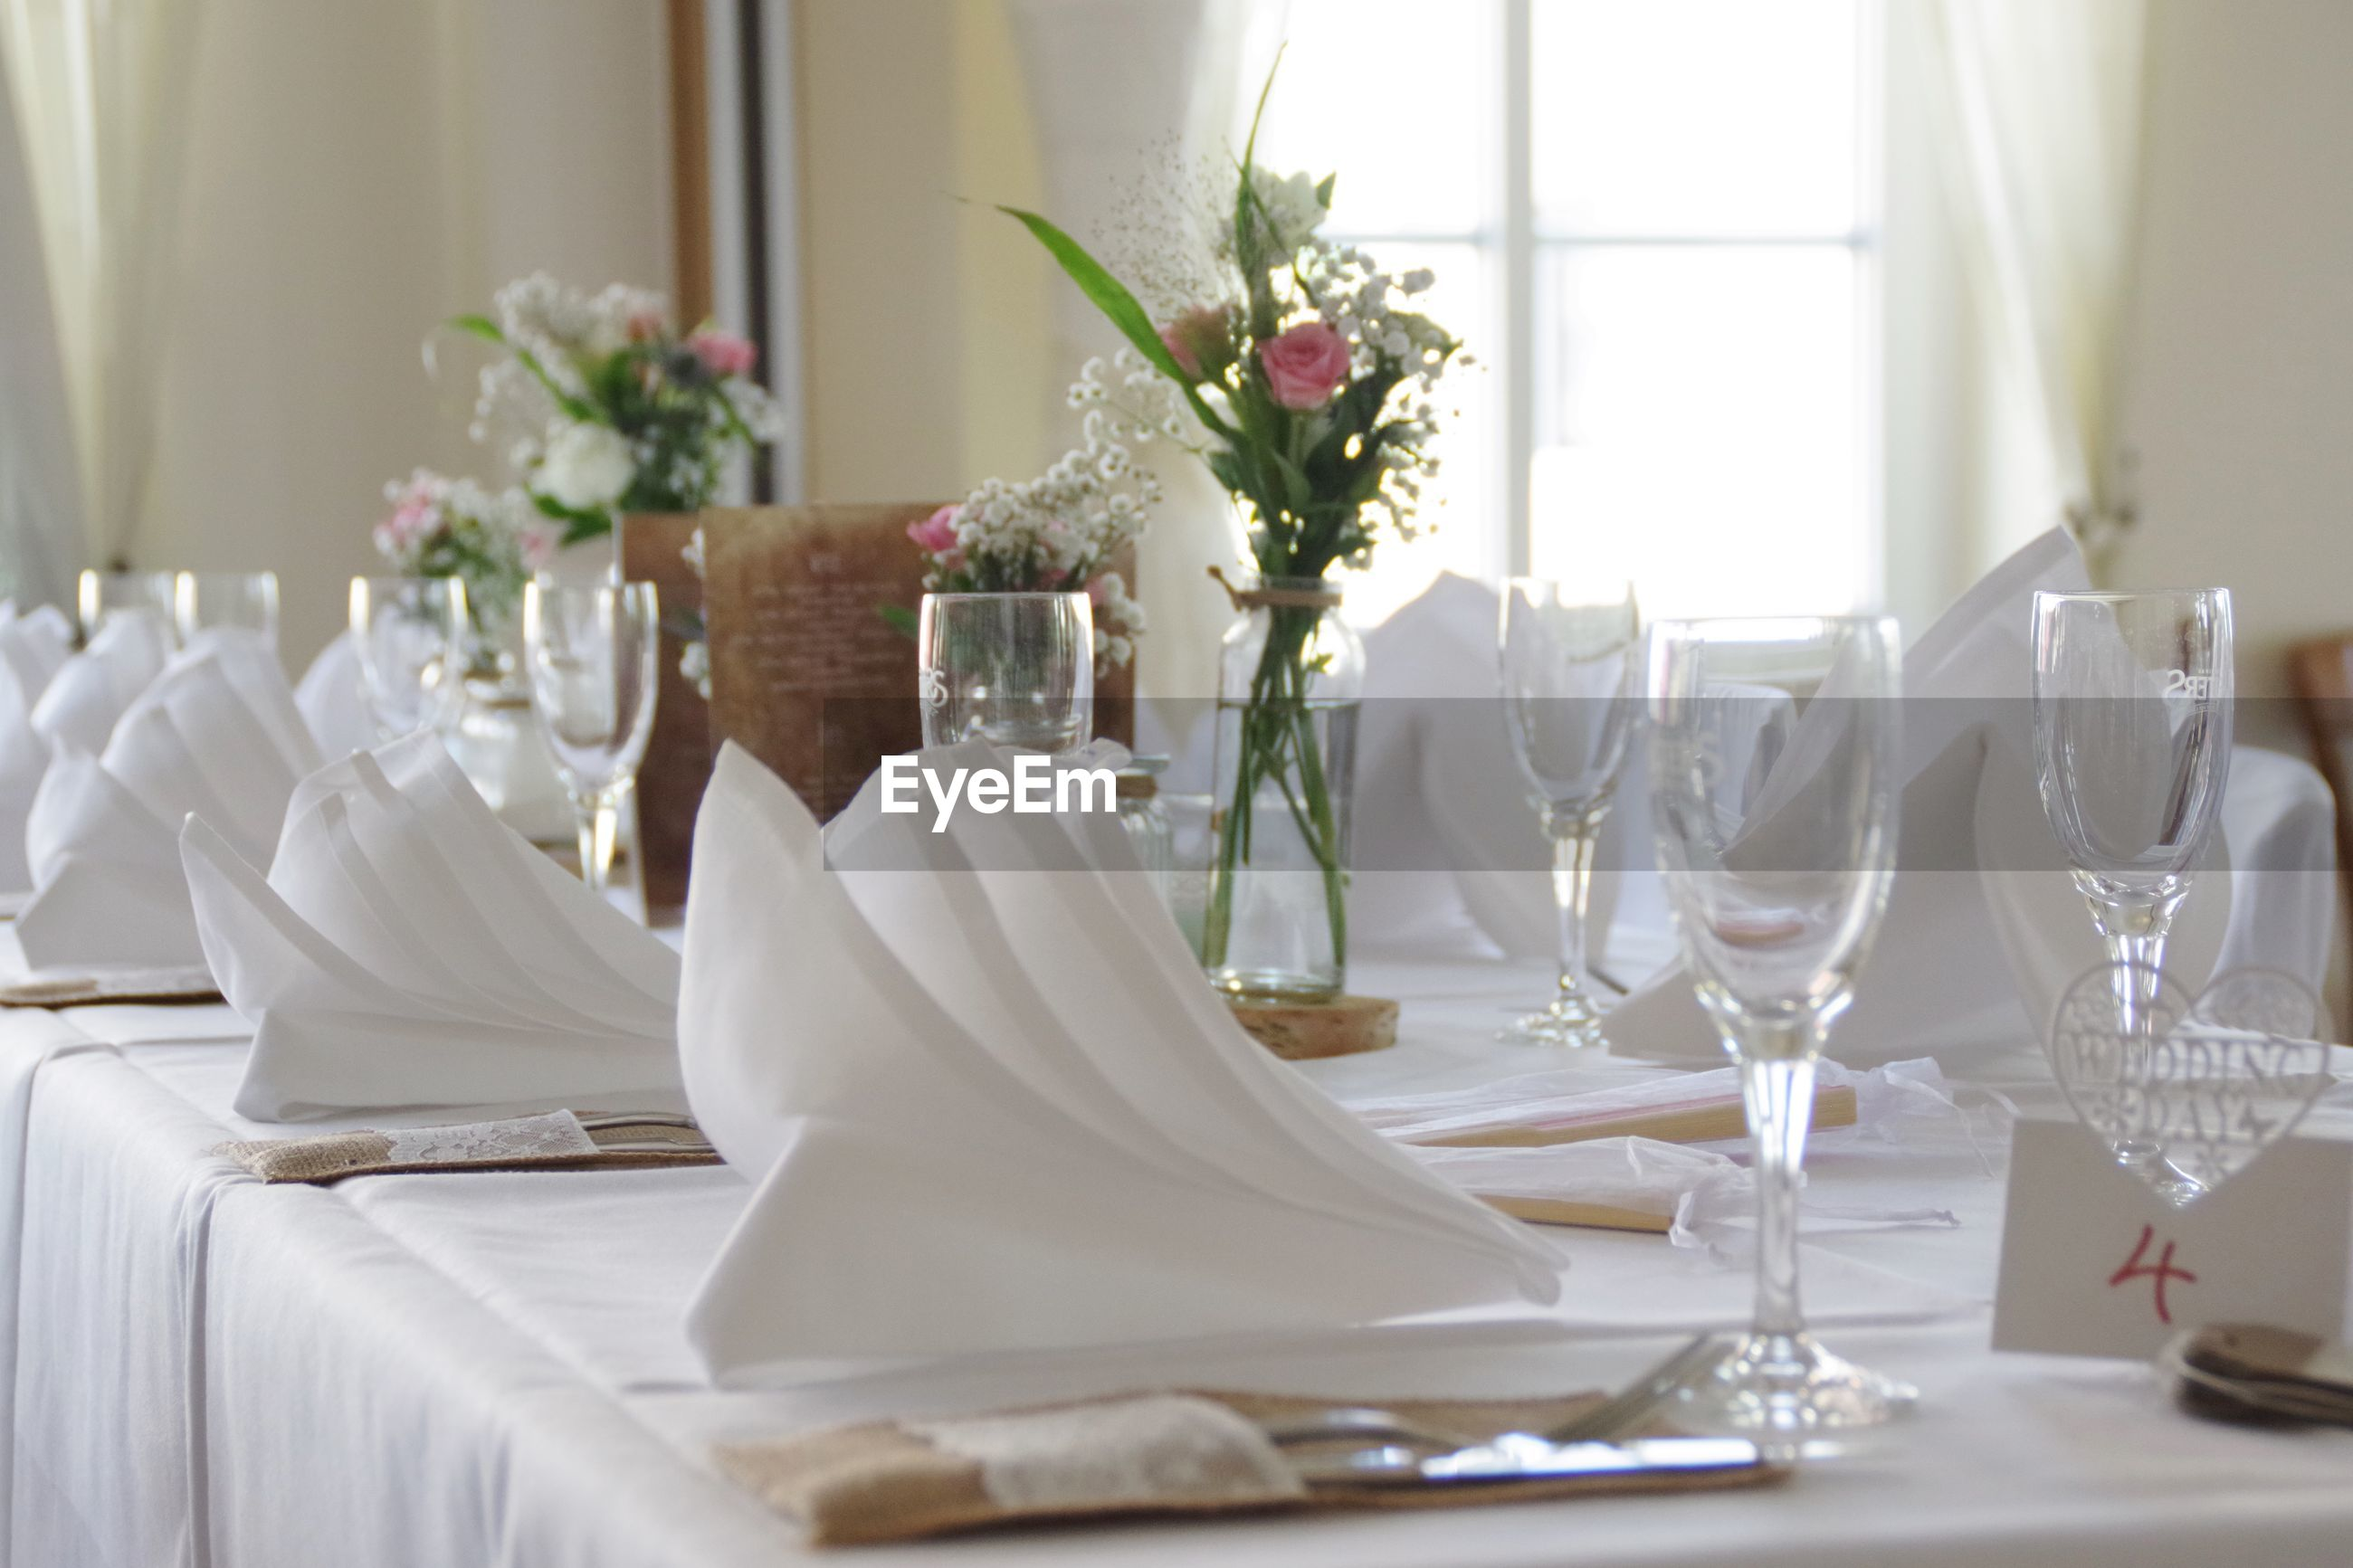 Flower vase and wineglasses on table in dining room